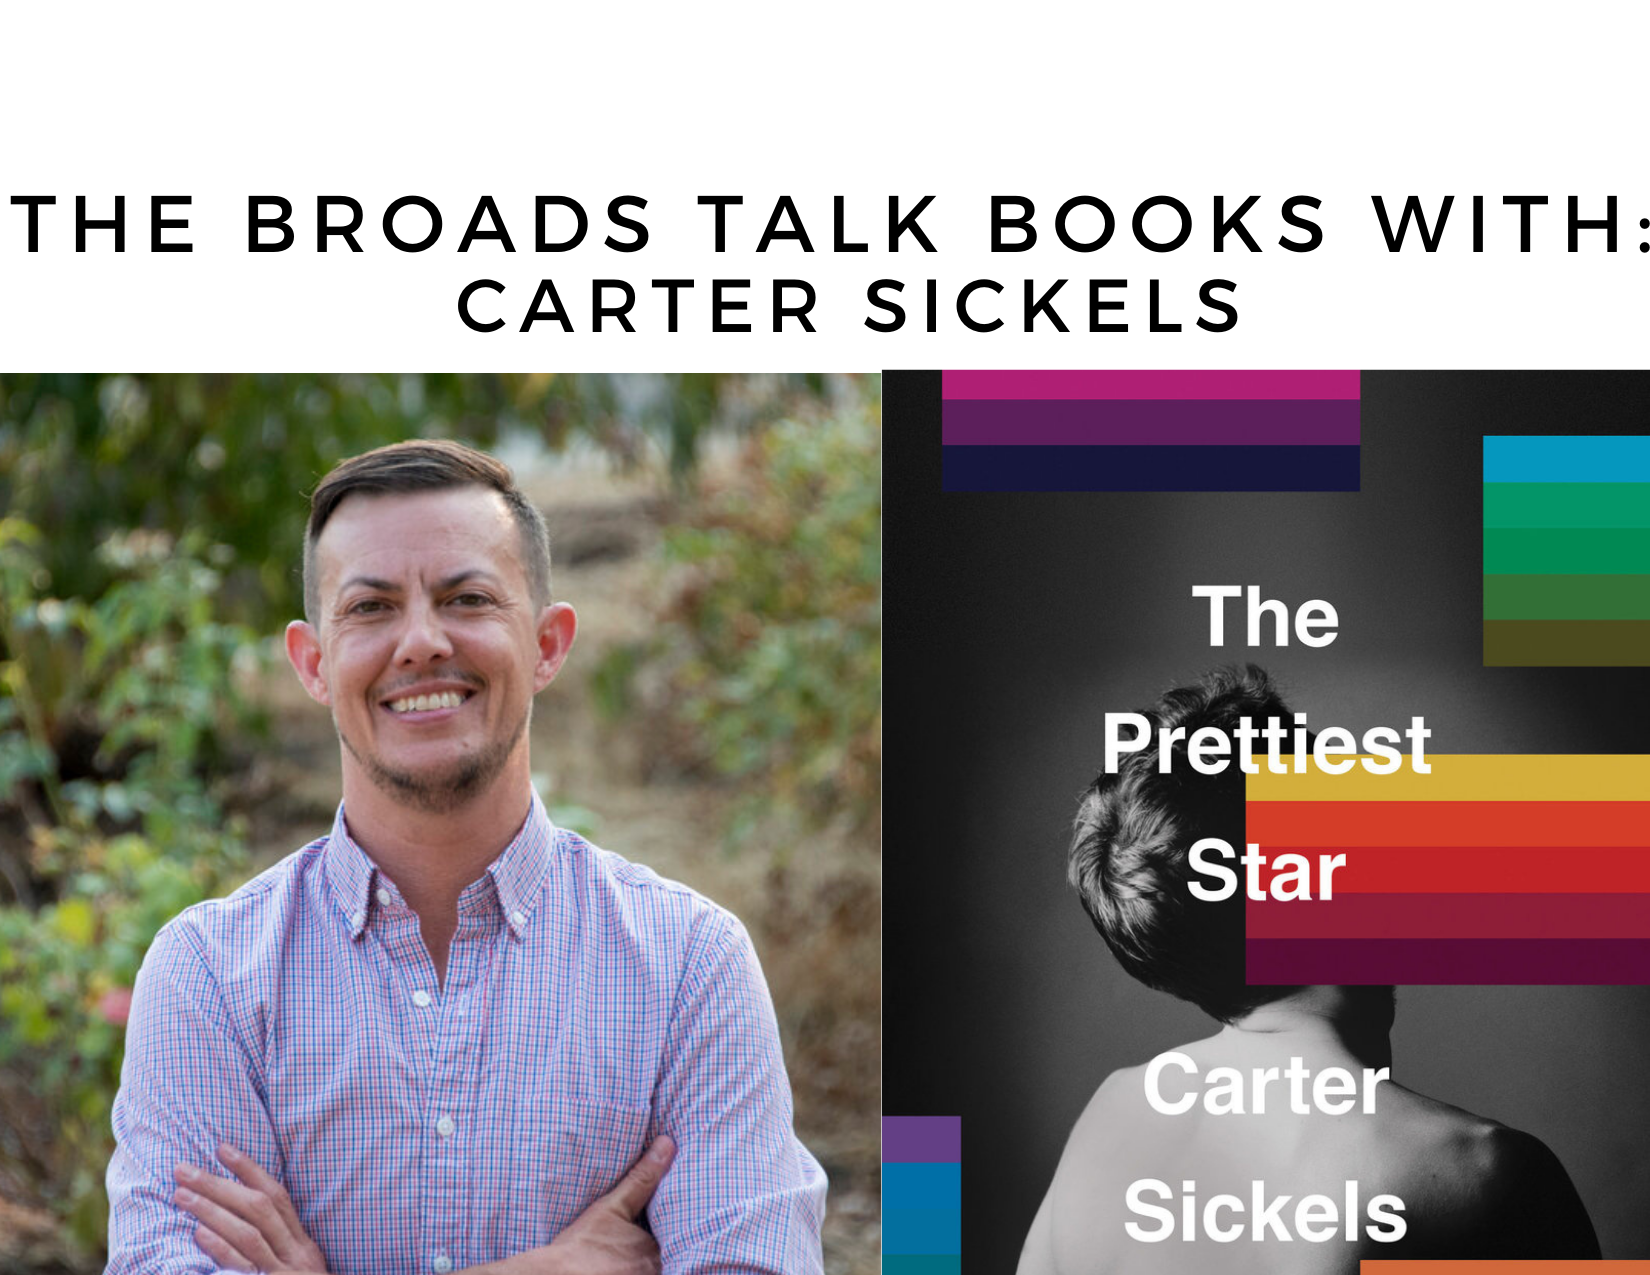 The Broads Talk Books With Carter Sickels